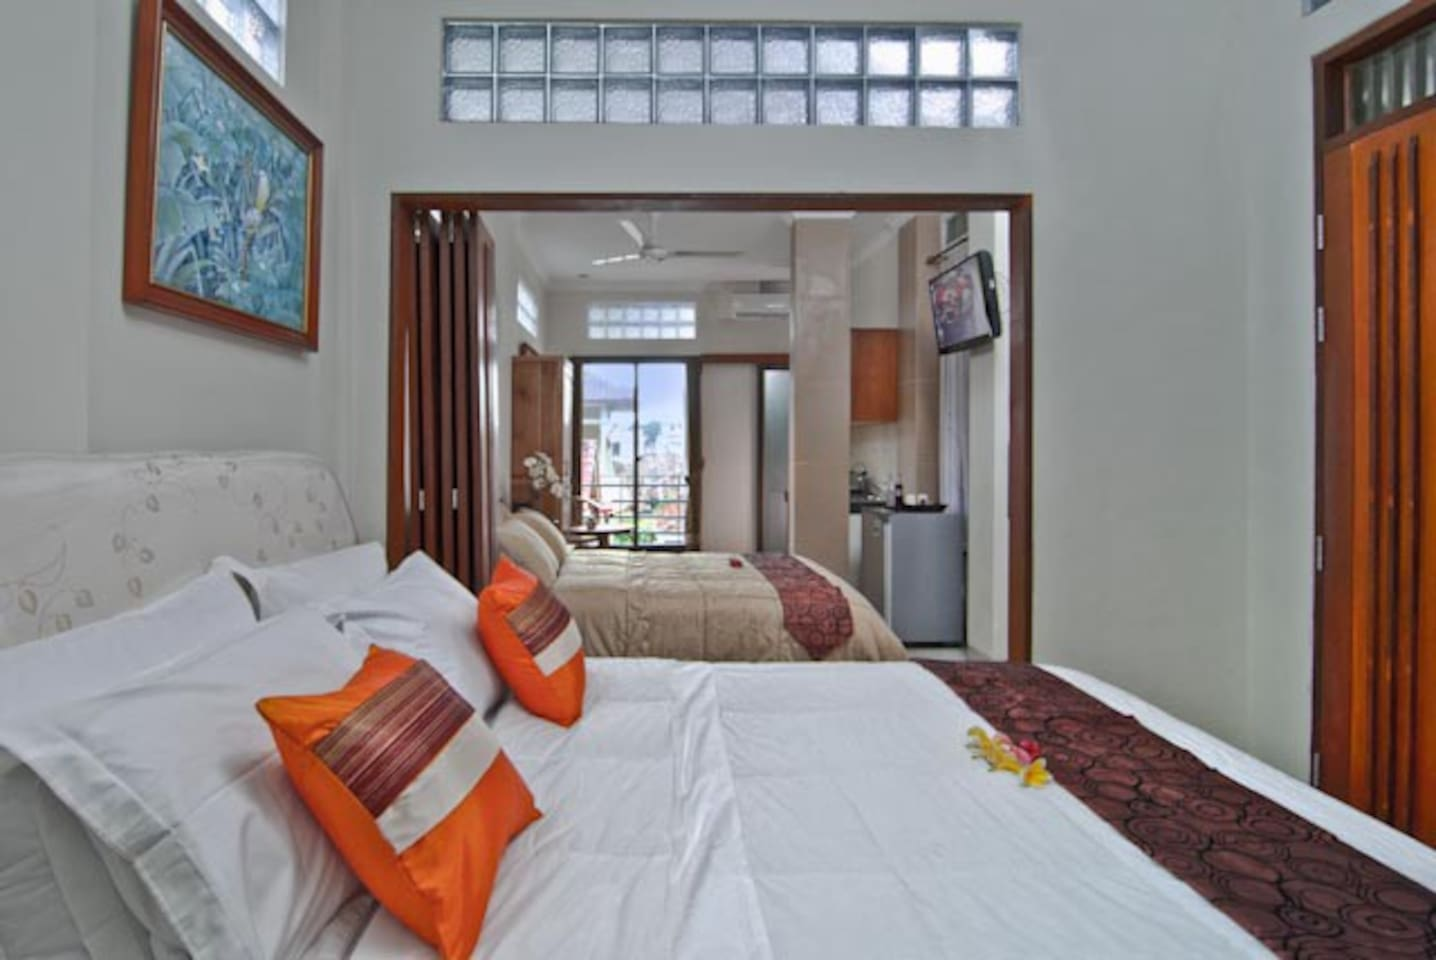 Suite Room: 2 BR with connecting door, with a kitchenette and 2 refridgerators, 2 LCD TV with intl channels, free WIFI , 2 ACs, hot water rainshower and small balcony